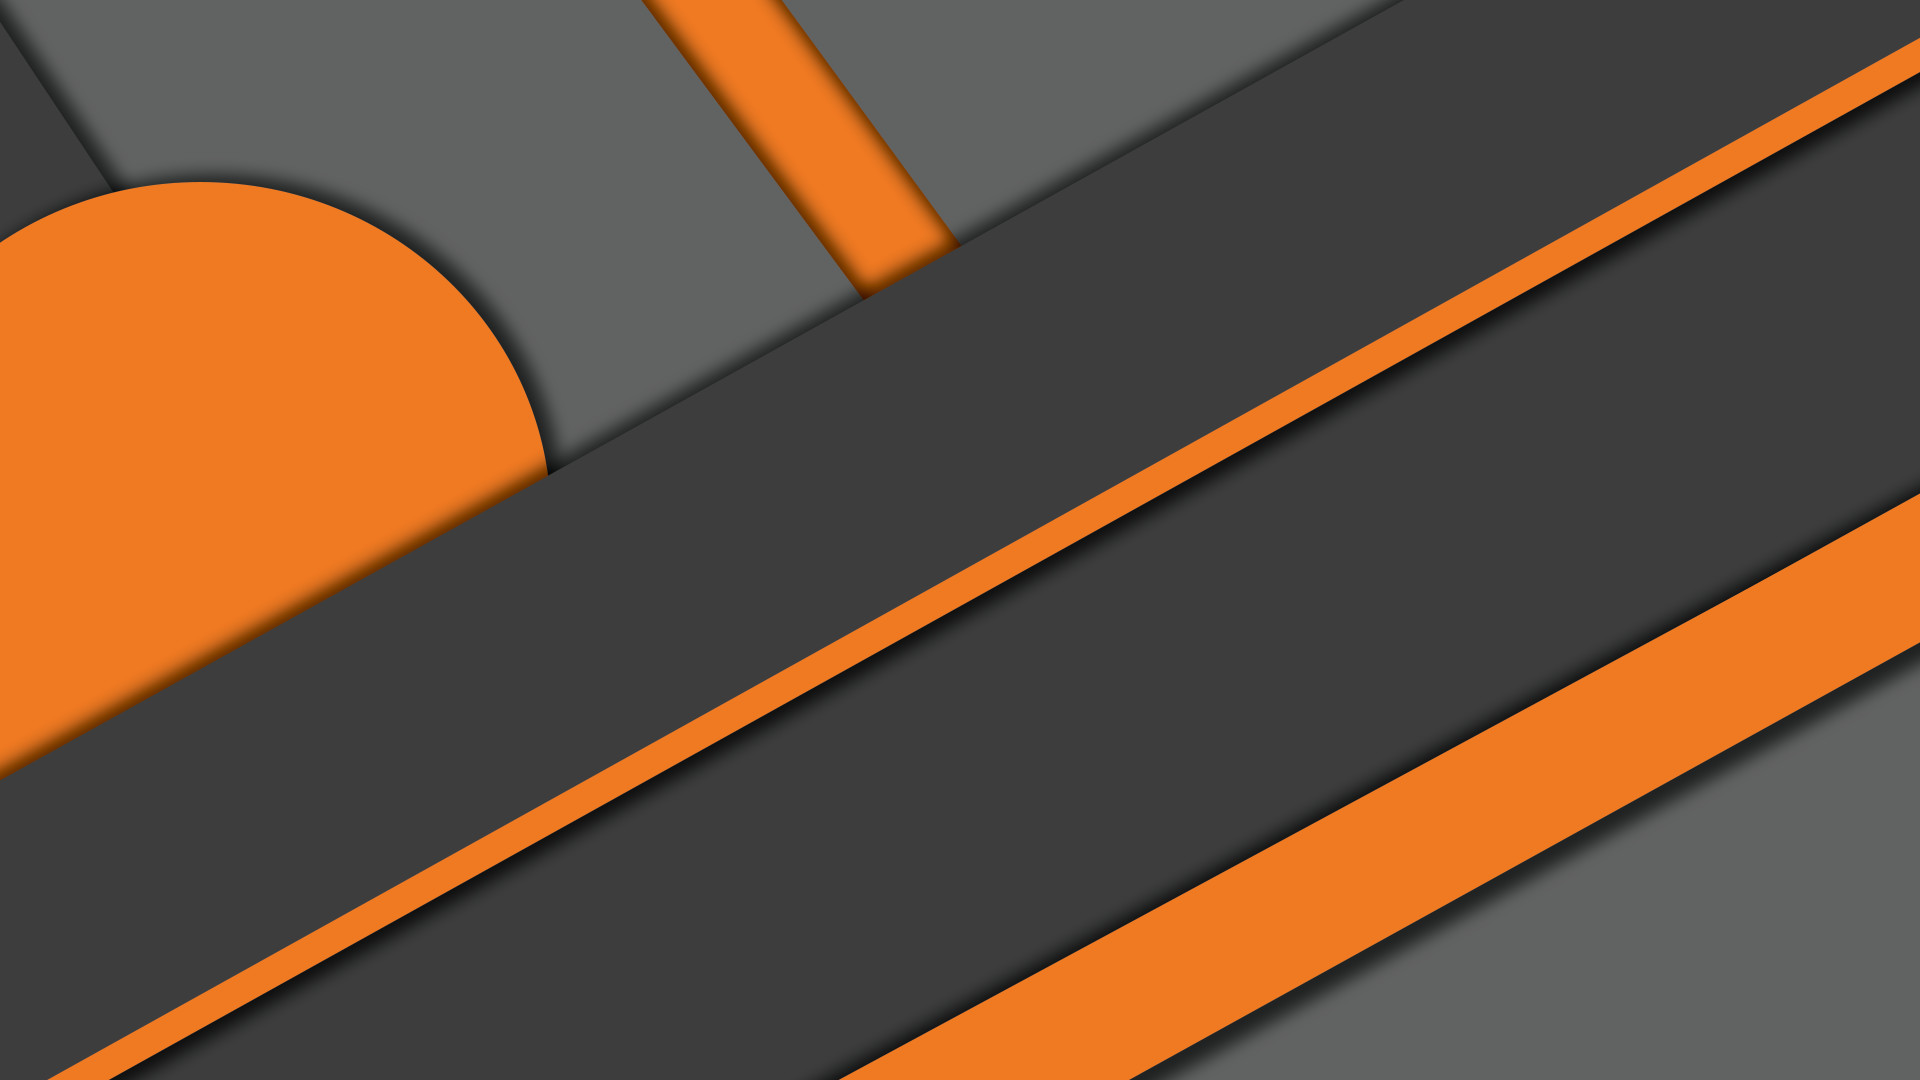 Orange Material [1920×1080] Need #iPhone #6S #Plus #Wallpaper/ #Background  for #IPhone6SPlus? Follow iPhone 6S Plus 3Wallpapers/ #Backgrounds Must …